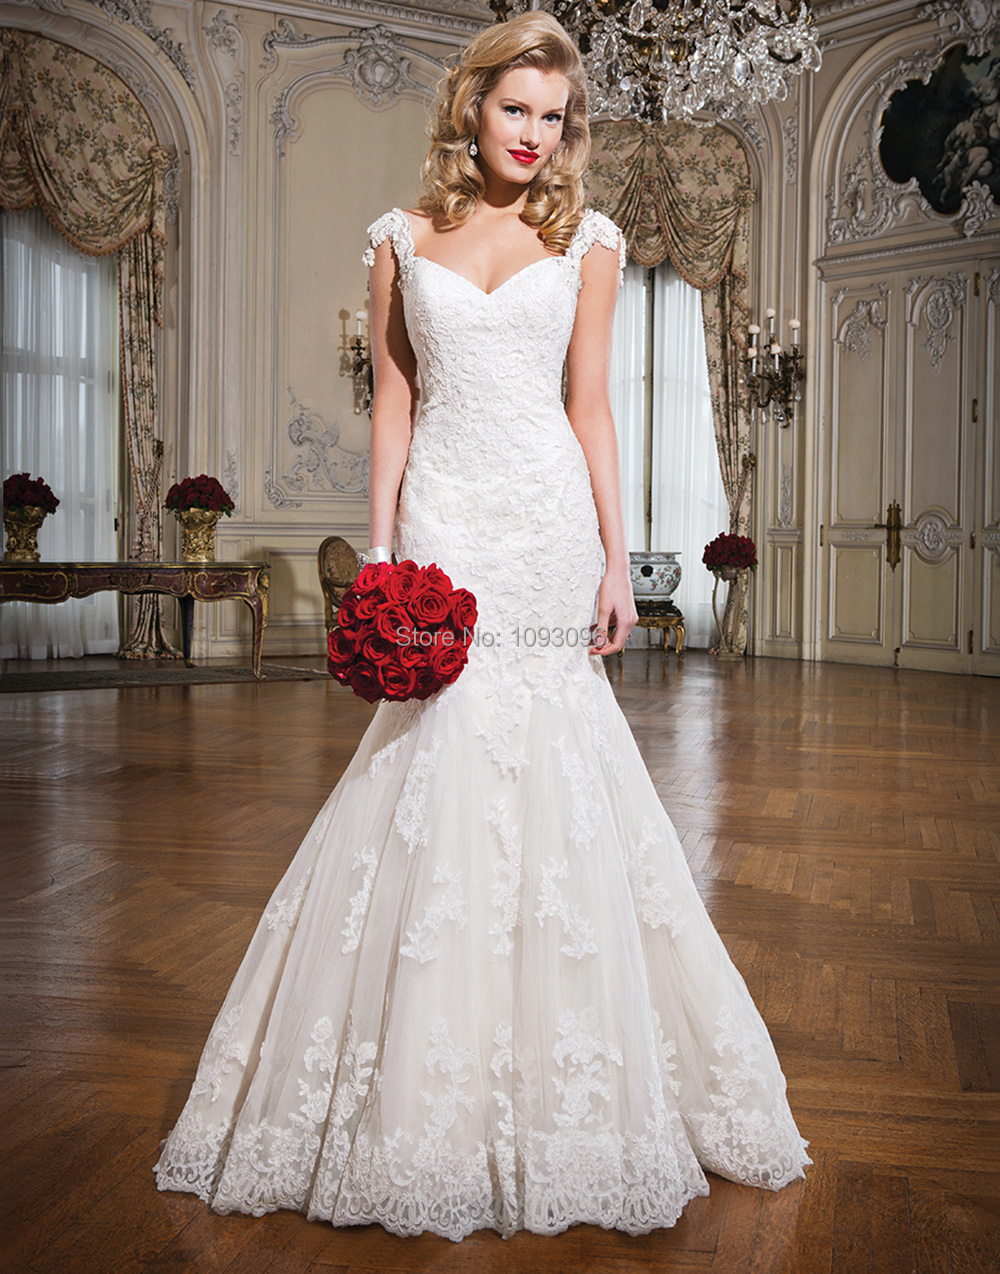 2015 New Hot Lace Applique Cap Sleeves Mermaid Backless Wedding Dress Bridal Gowns - I Do Dresses Company store